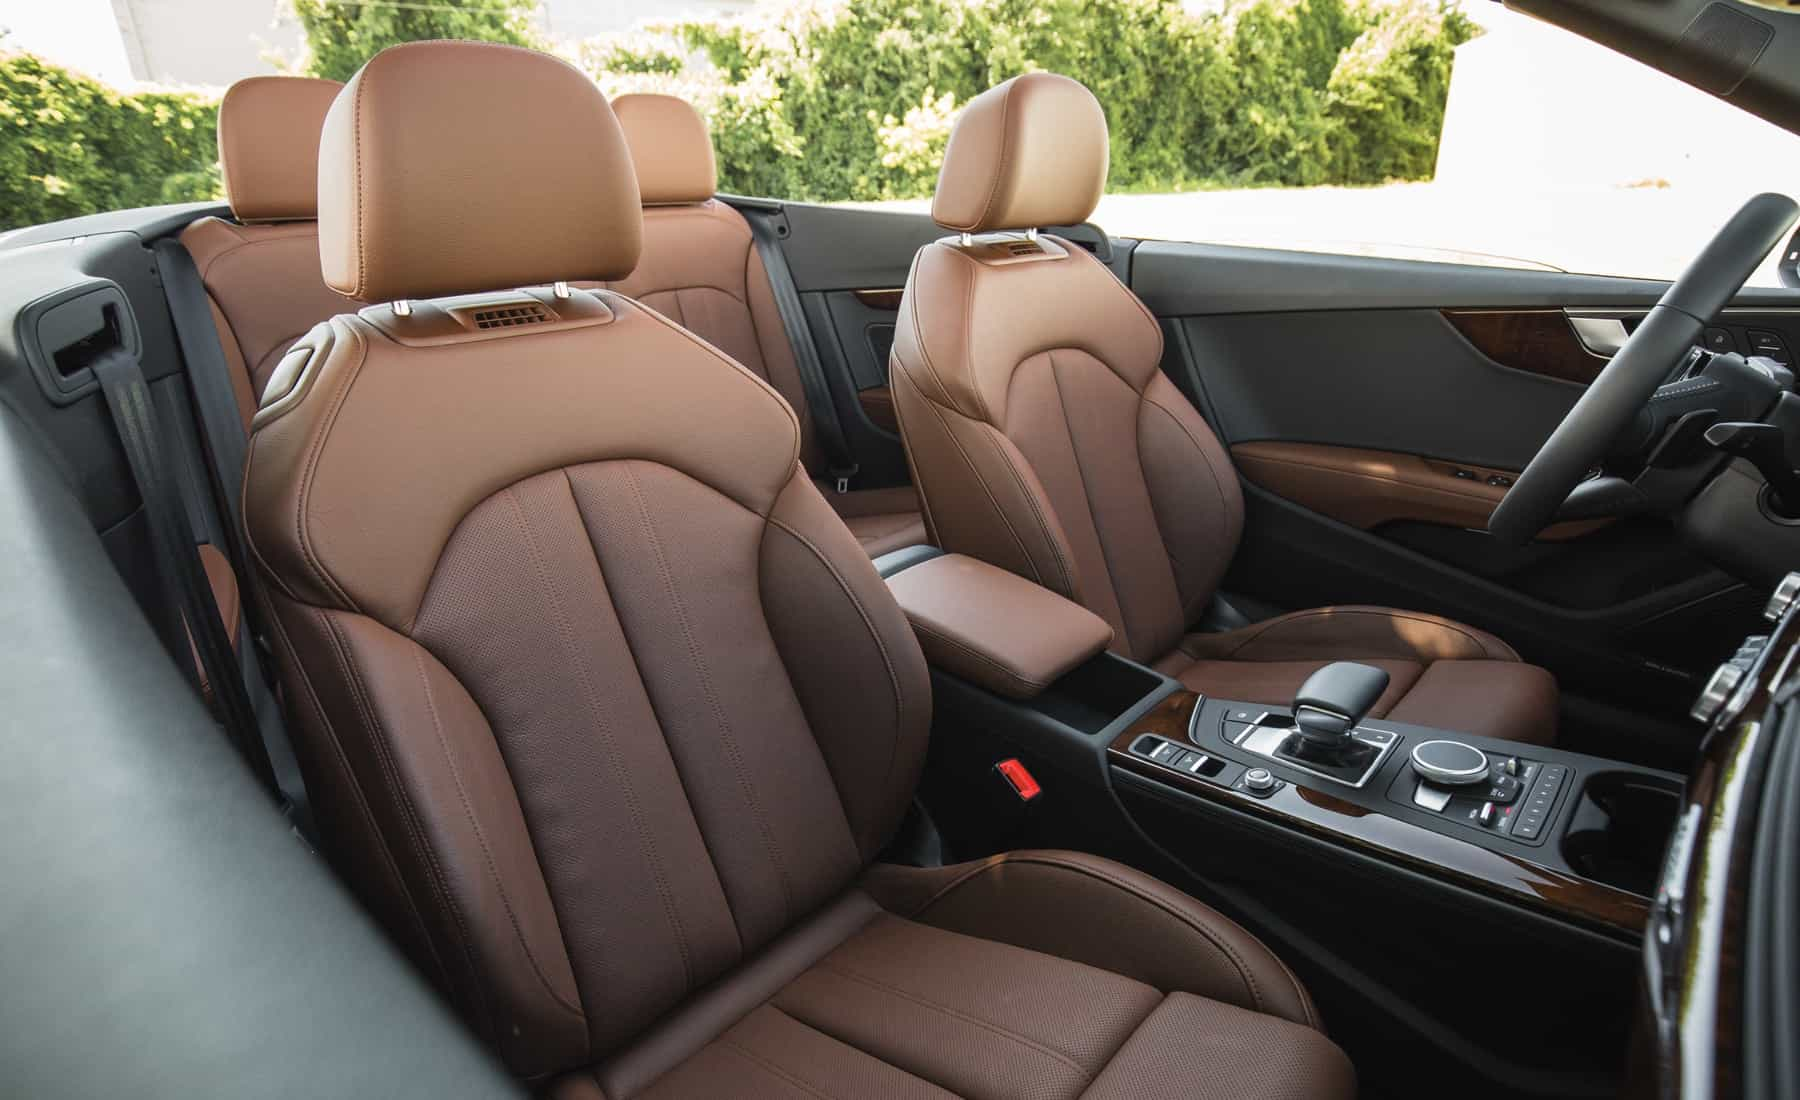 2018 Audi A5 Cabriolet Interior Seats Front (Photo 24 of 45)